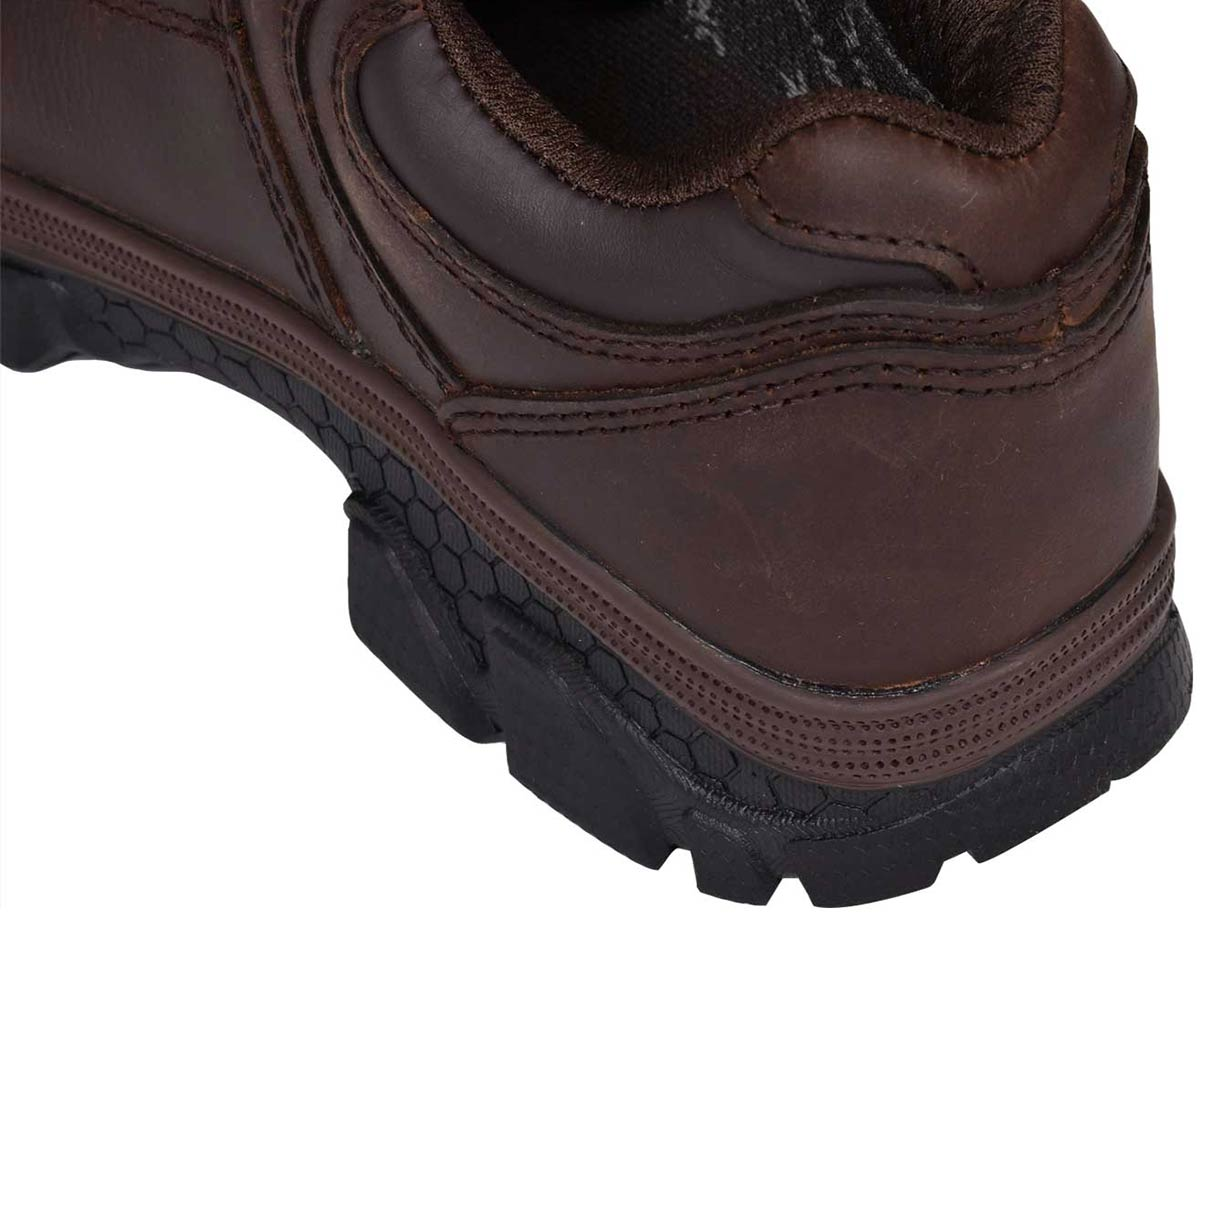 Nortwest Territory Aylmer Hiking Boots Brown